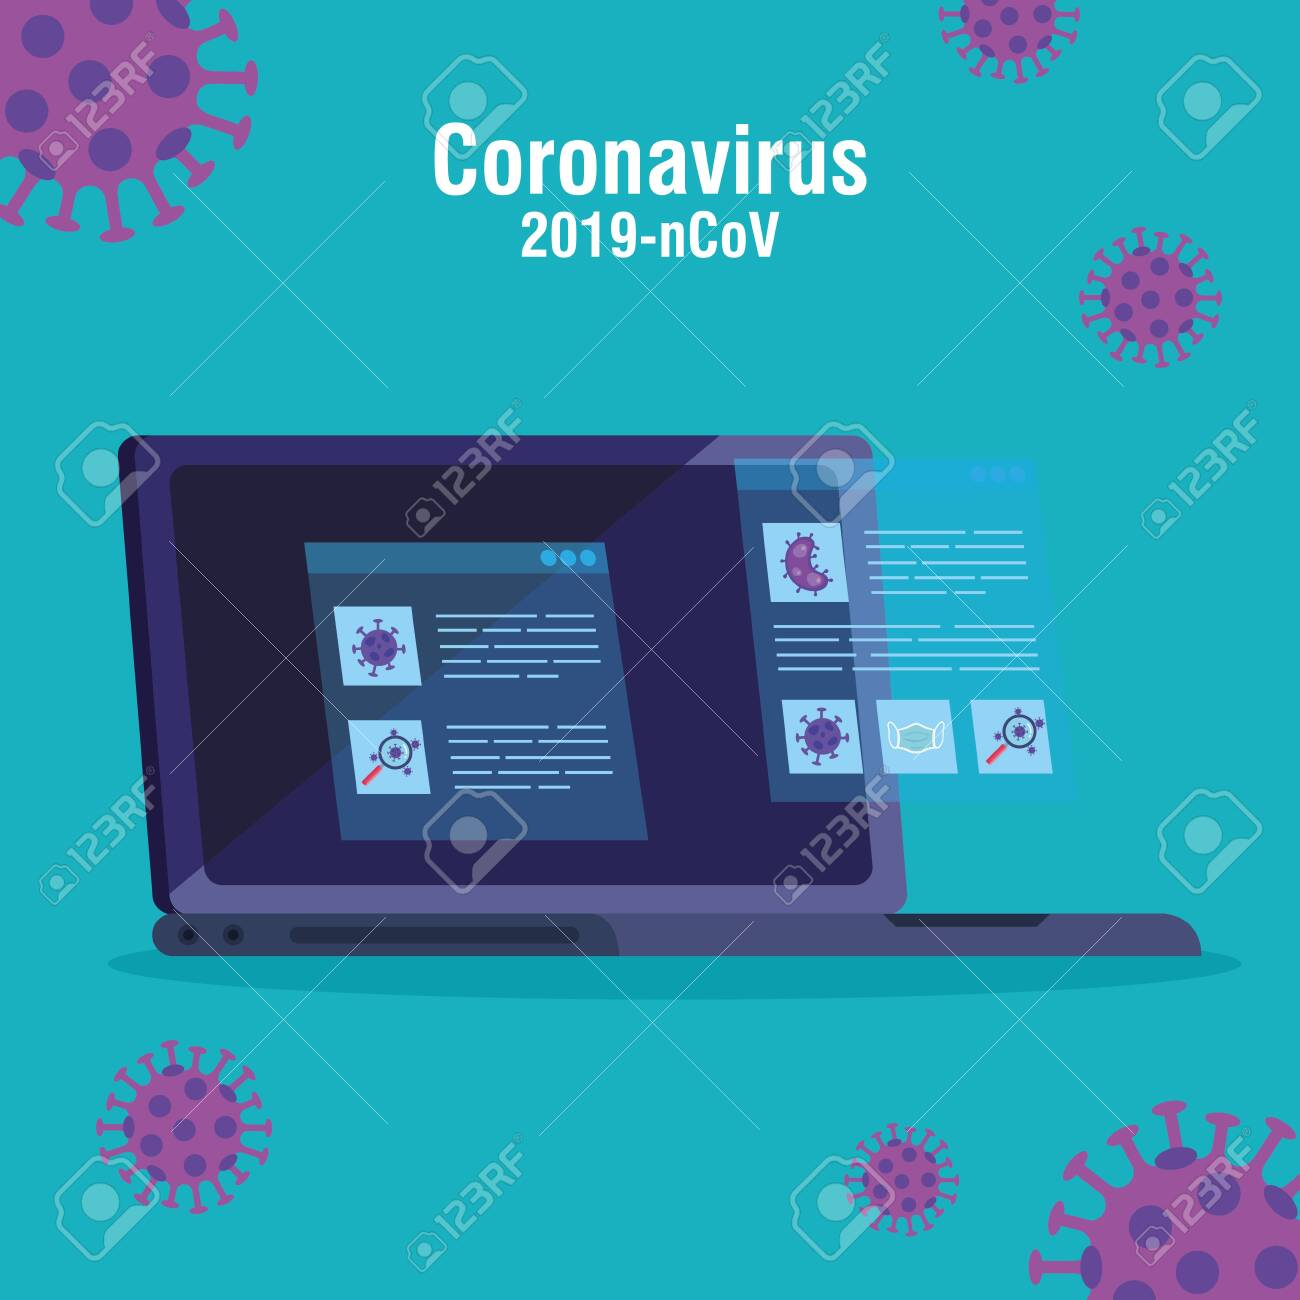 searching 2019 ncov information online in laptop computer vector illustration design - 147278914